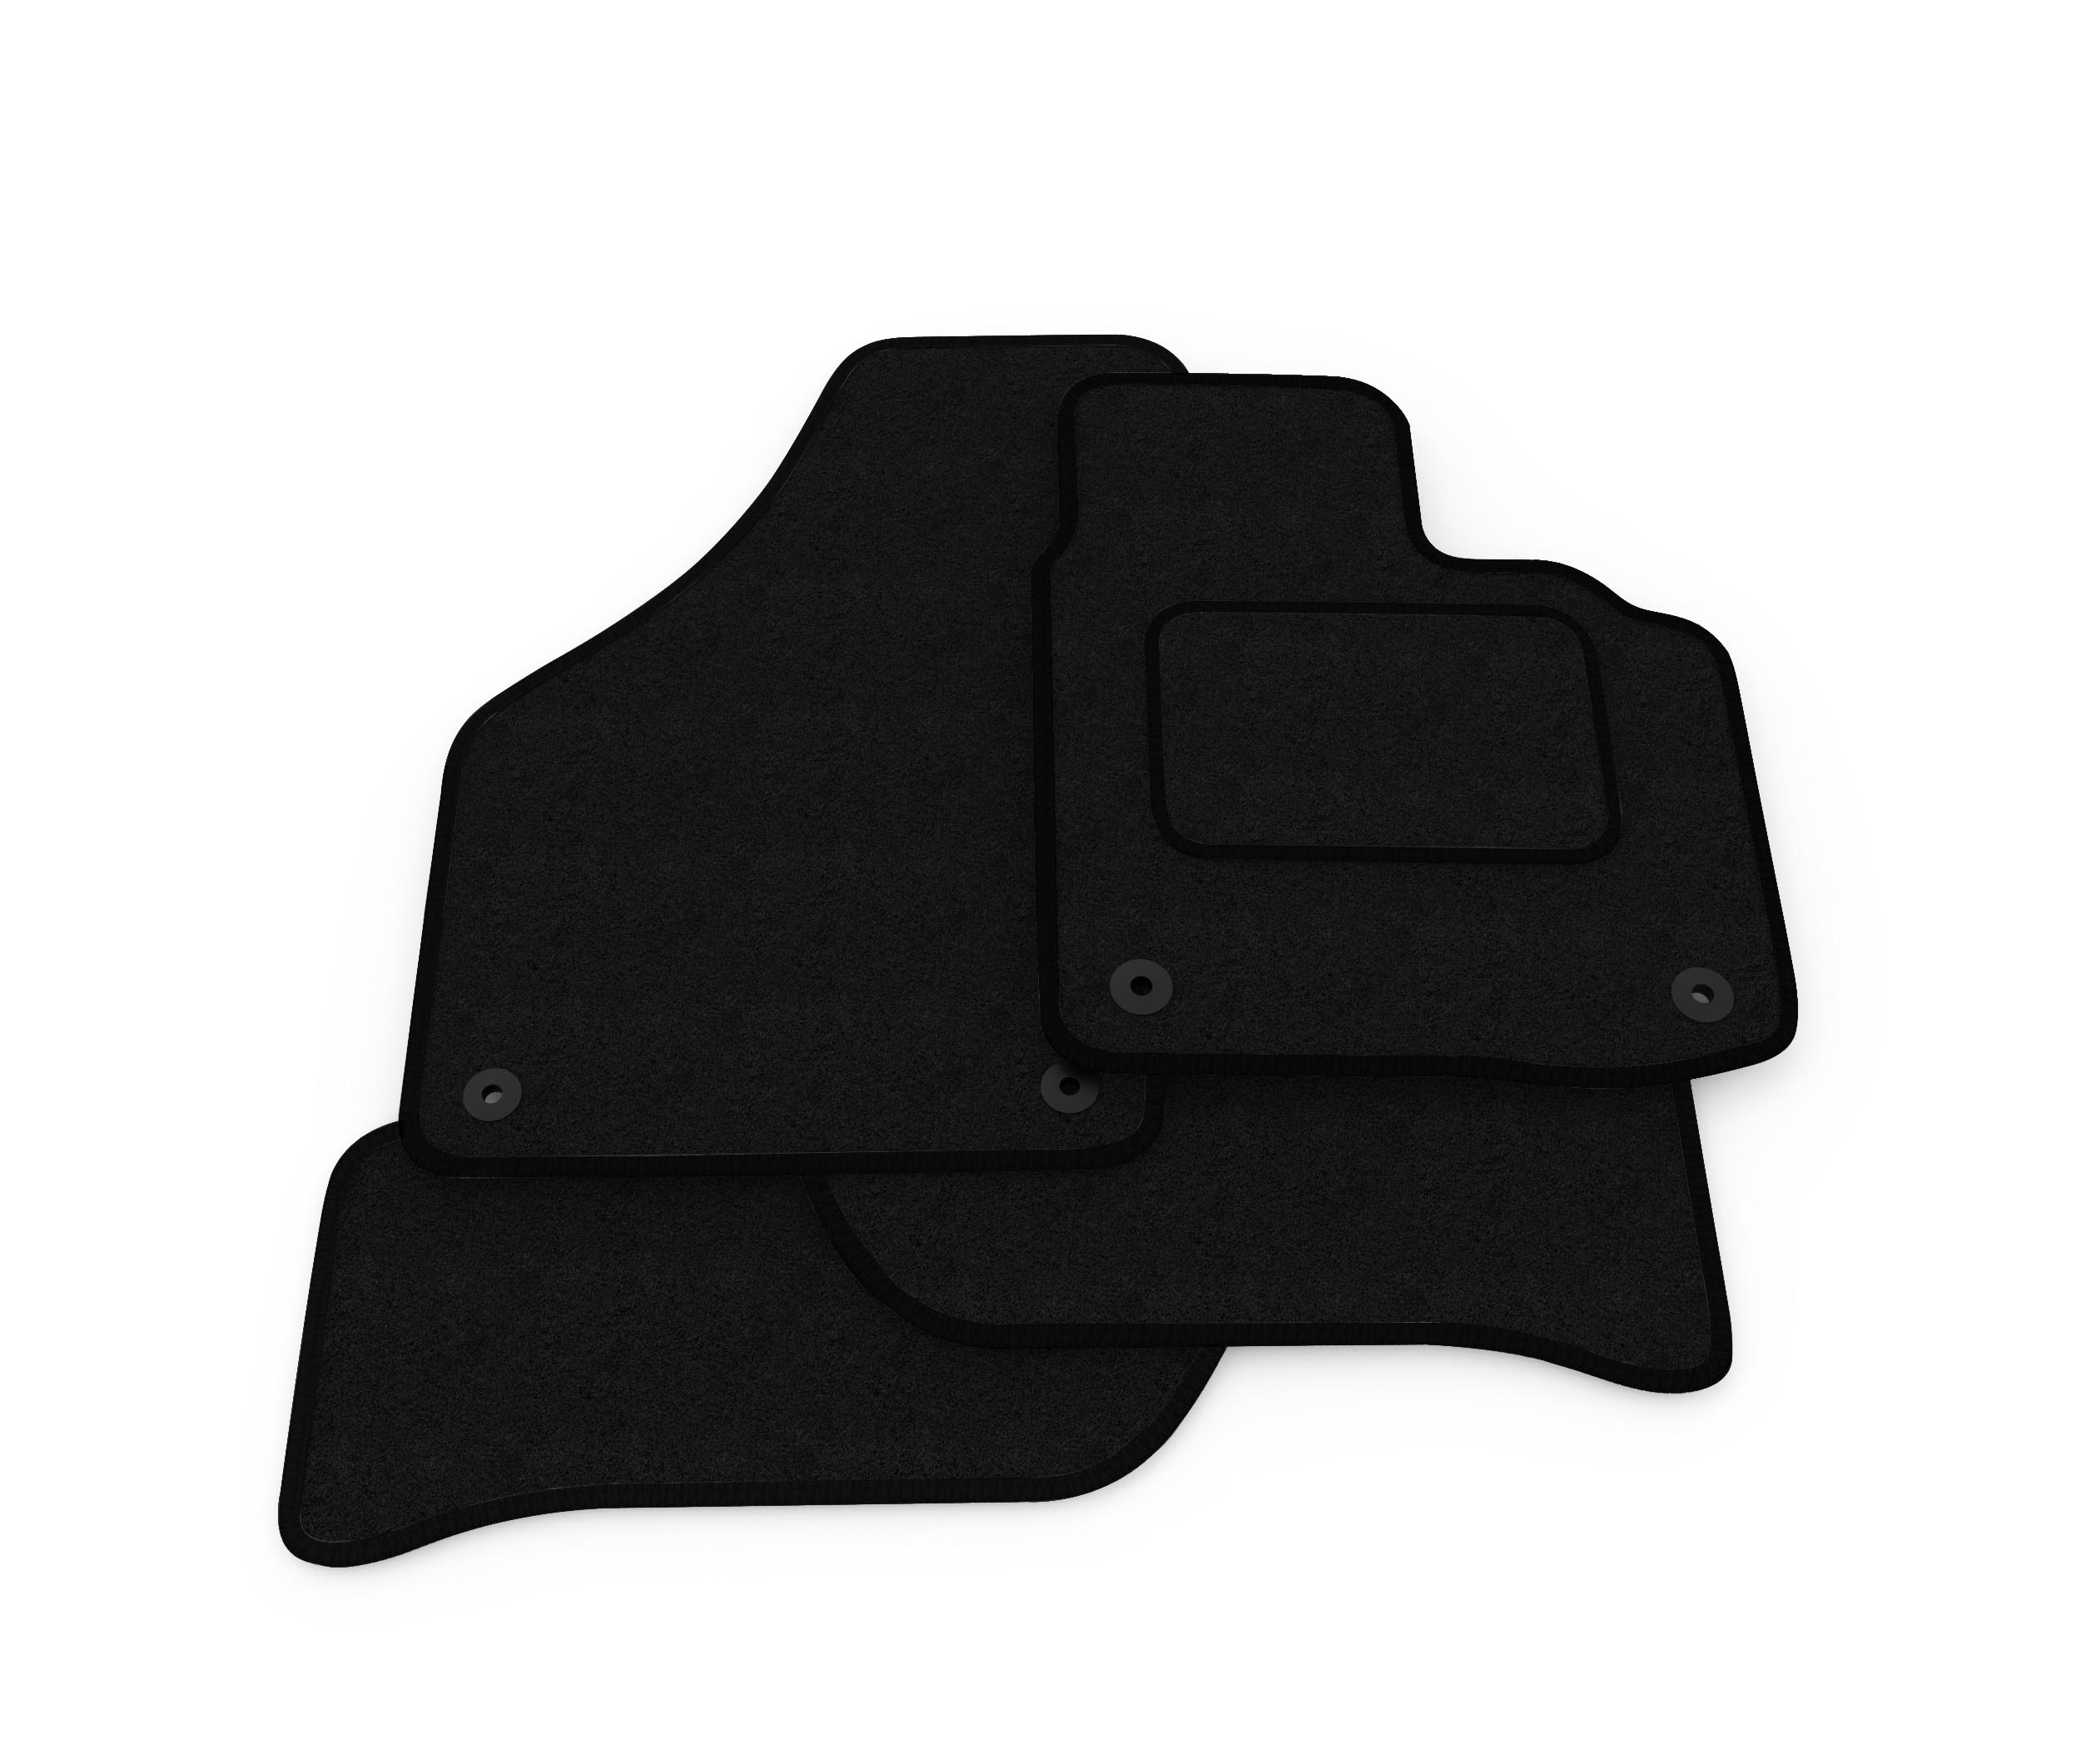 Vauxhall Corsa E 2014-Present Fully Tailored Black Car Carpet Boot Mat